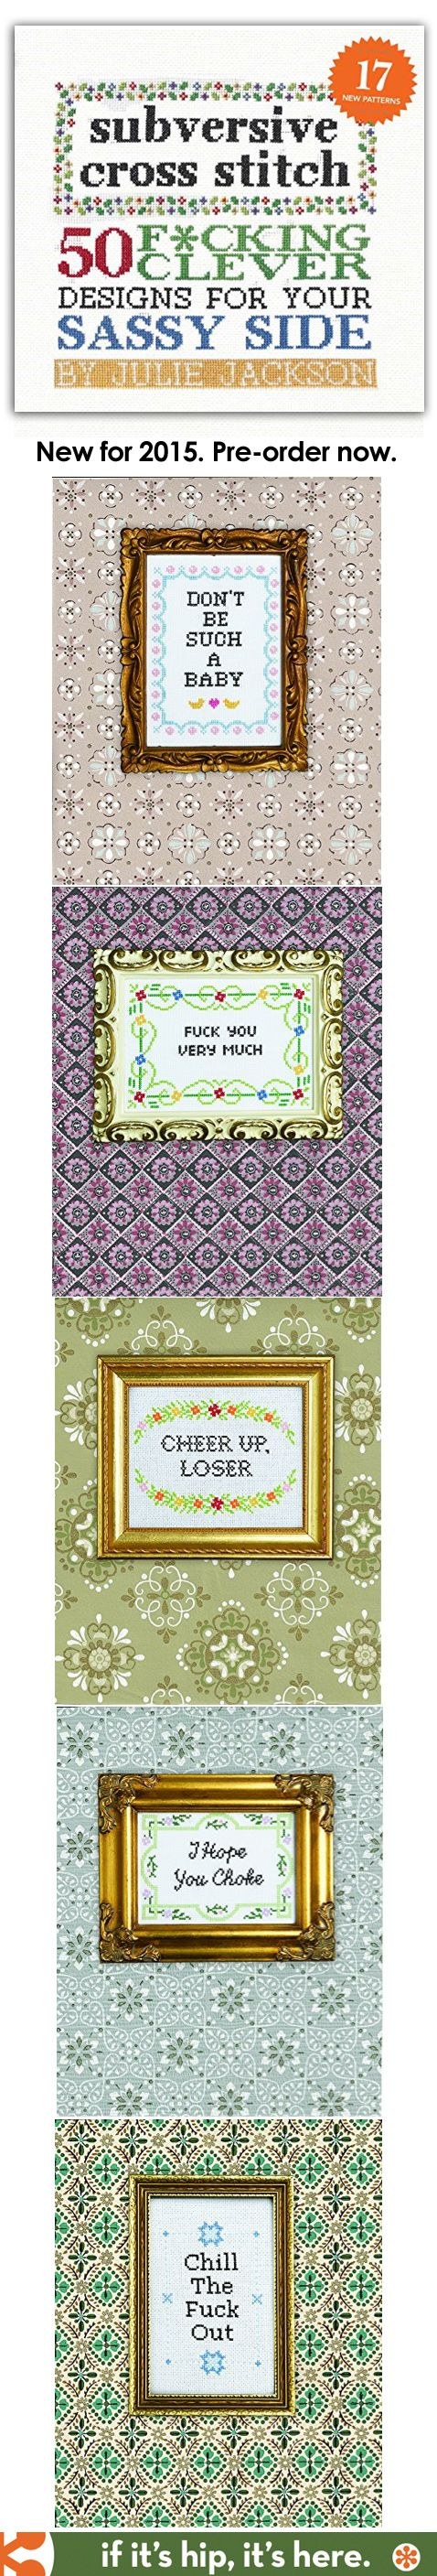 The New Subversive Cross Stitch Pattern book. 50 F**king Clever Designs for Your Sassy Side.